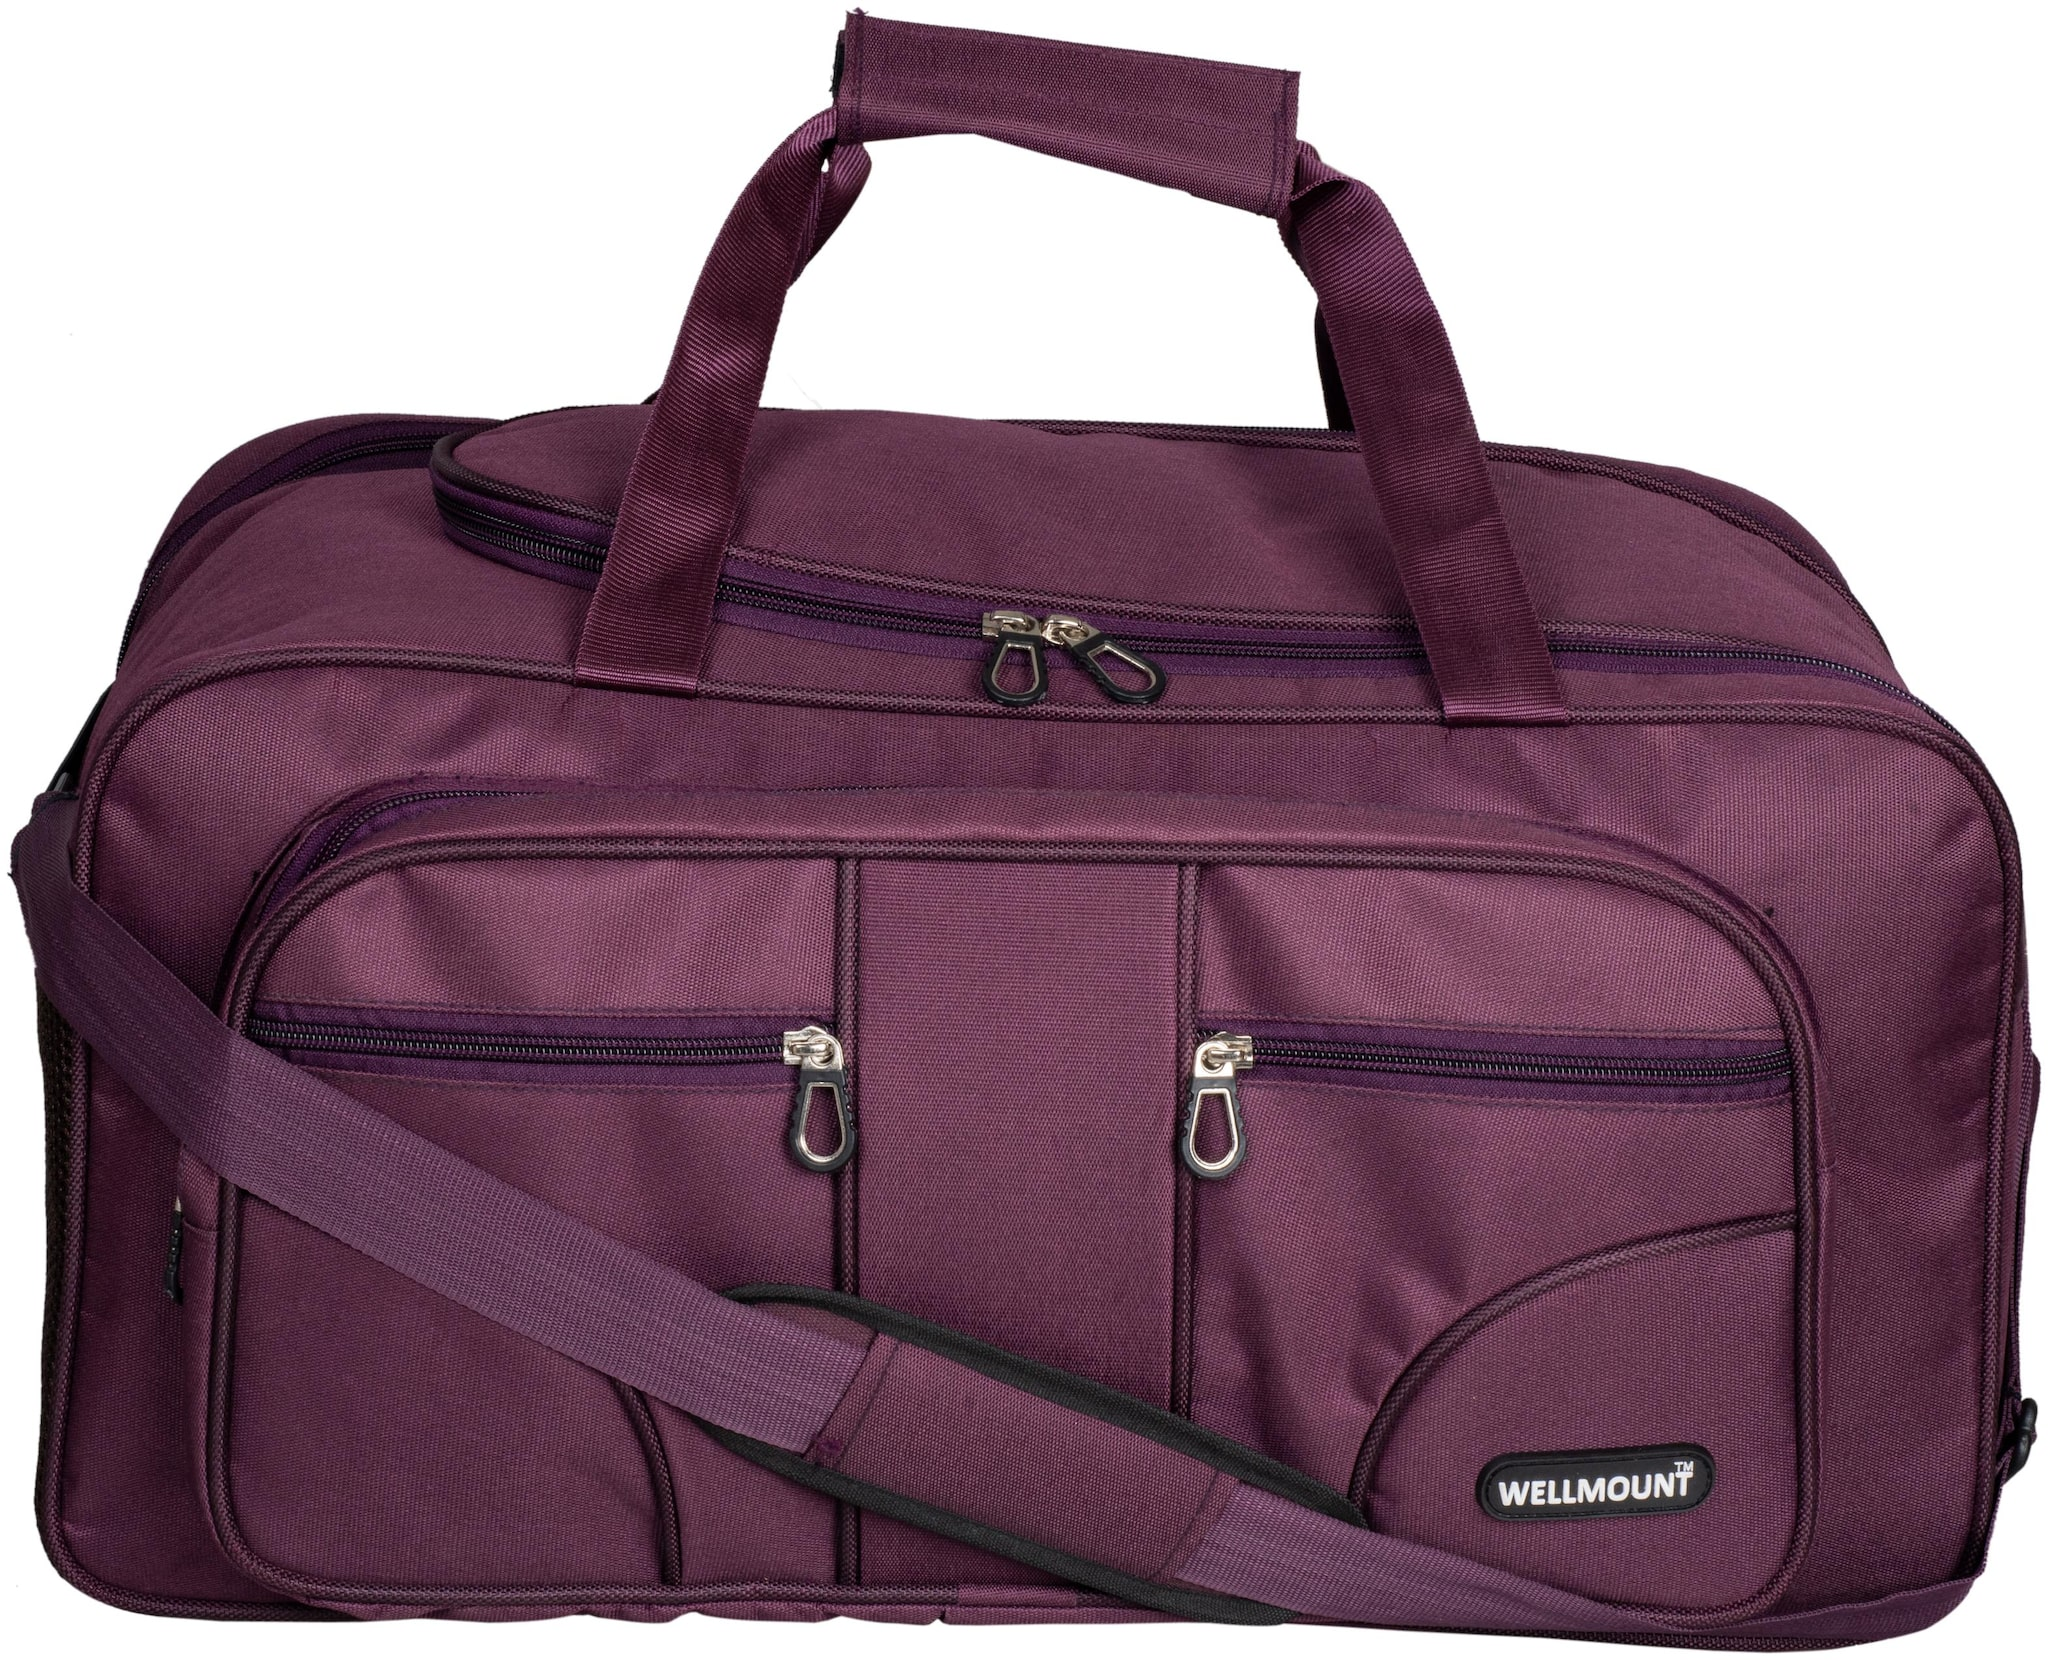 Wellmount  Expandable  Polyester Maroon 50 L Weekender Luggage/ Travel Duffel Bag for Men and Women